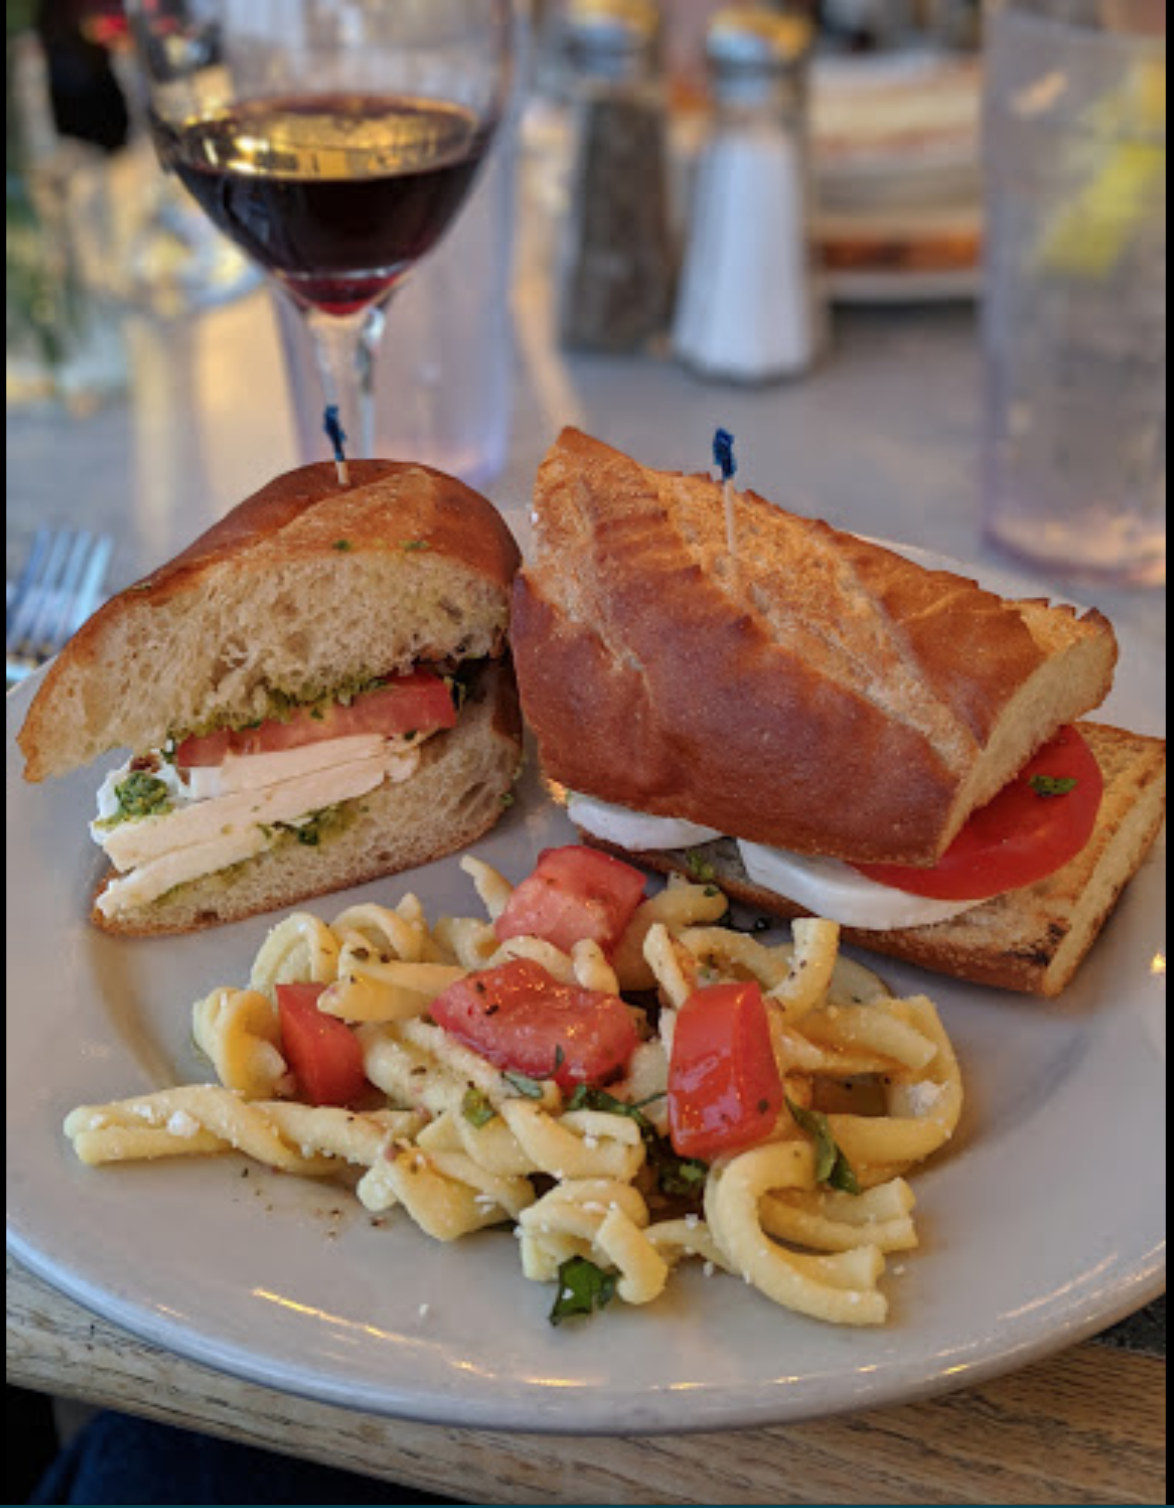 Caprese Sandwich next to a glass of wine and side of pasta.